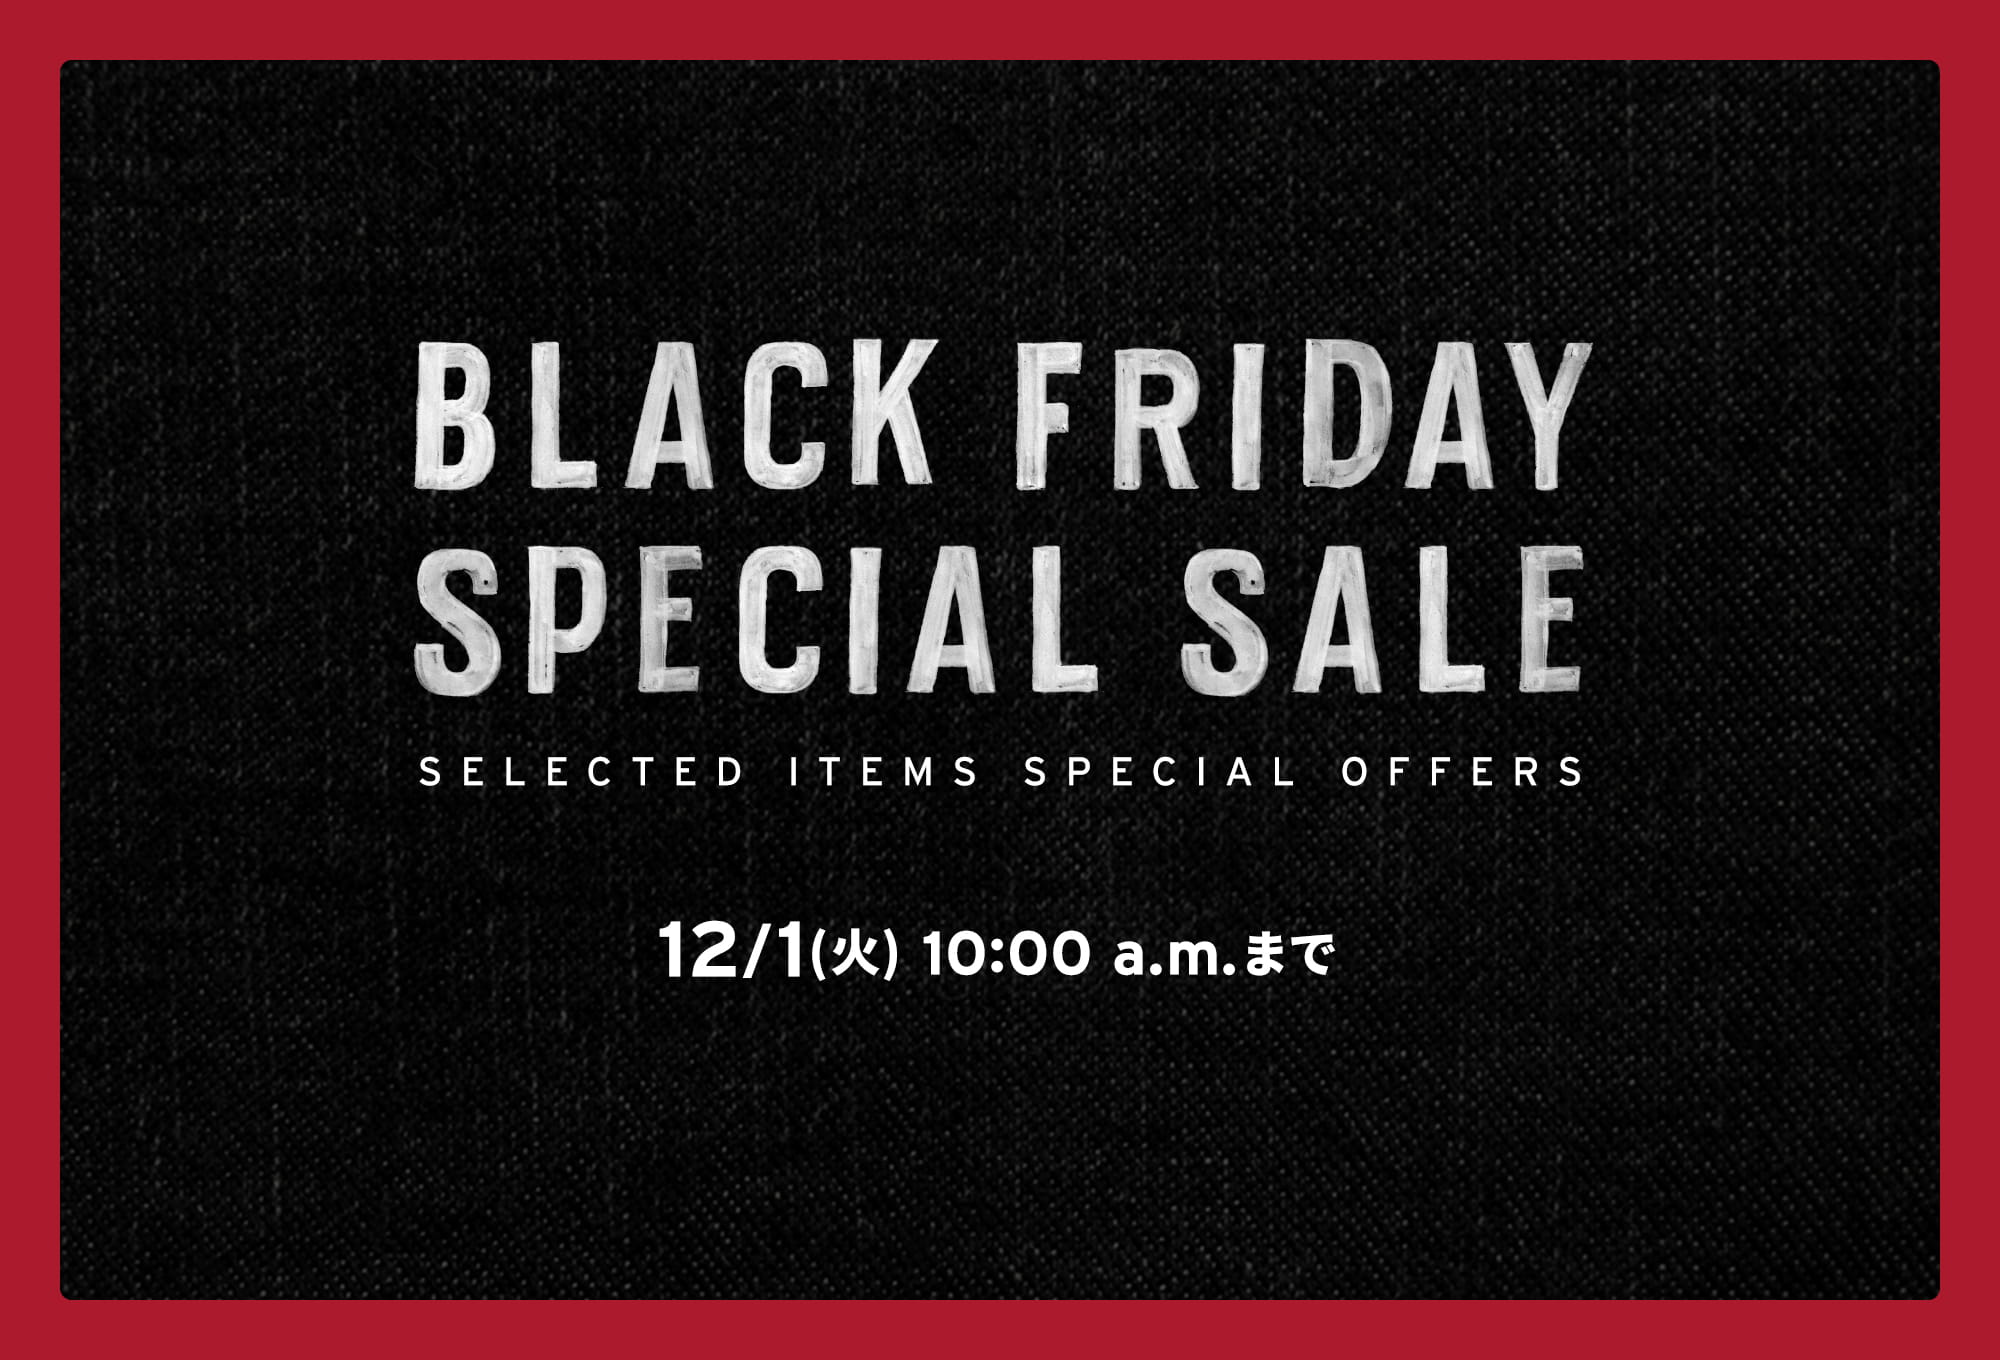 LEVI'S® BLACK FRIDAY SPECIAL SALE